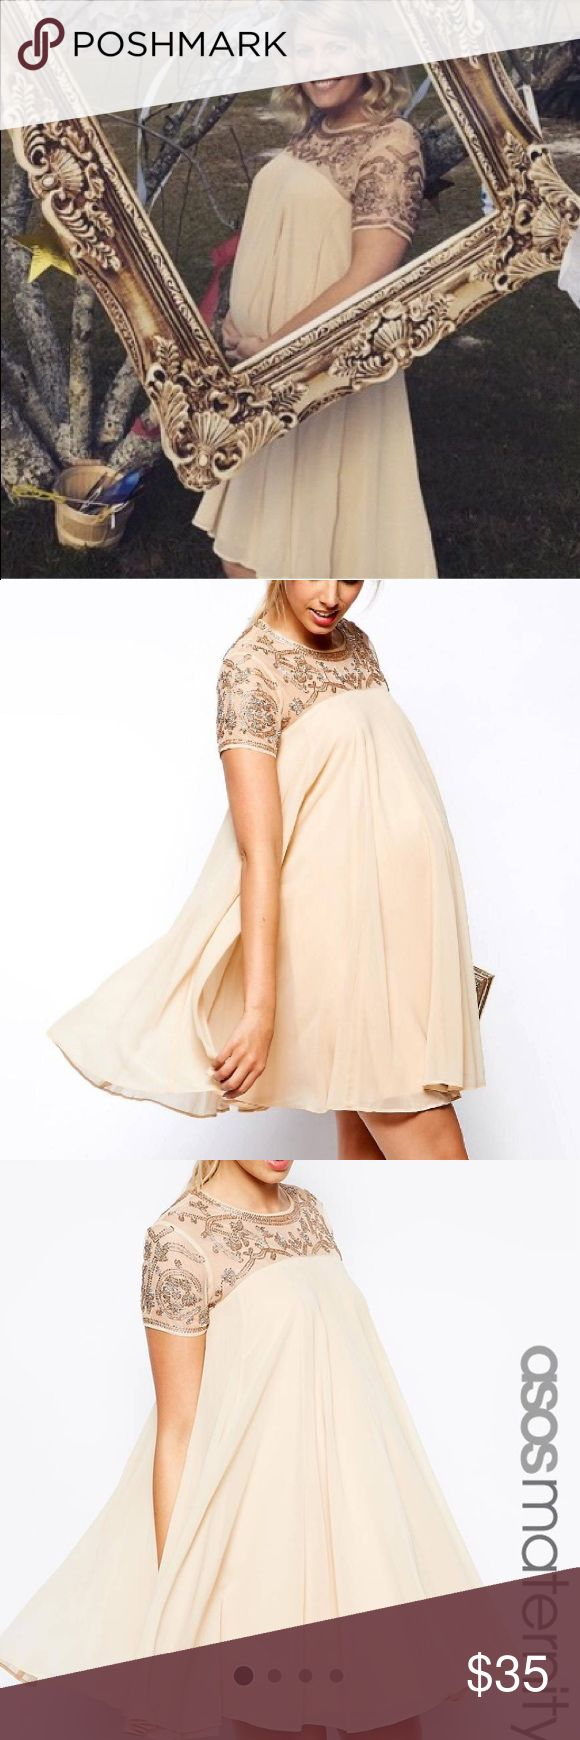 ASOS Nude maternity swing dress Nude swing dress with built in lining and baroque embellishment along the top and sleeves. Maternity dress that can easily be worn at different stages of pregnancy and even after. Not available online anymore. ASOS Dresses